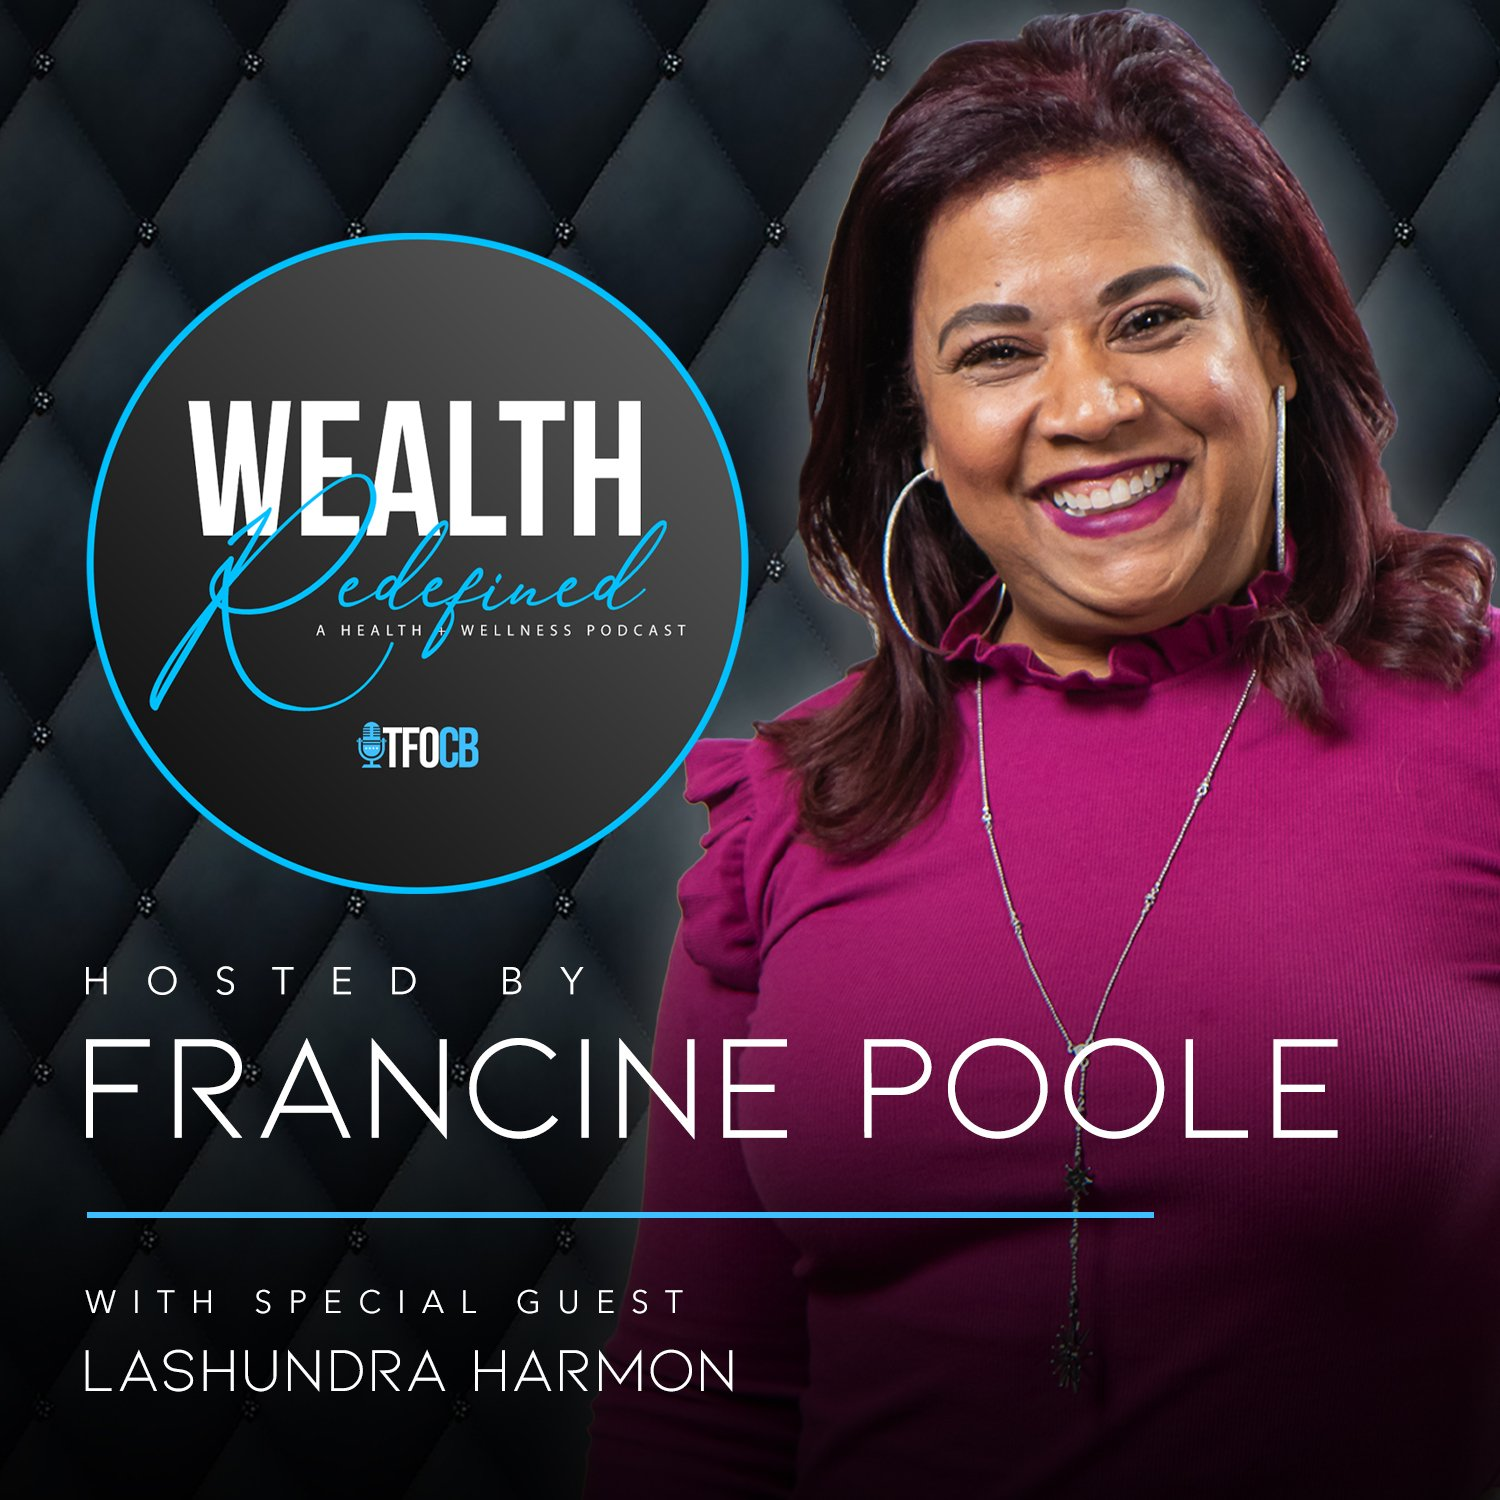 wealth redefined Francine Poole with LaShundra Harmon